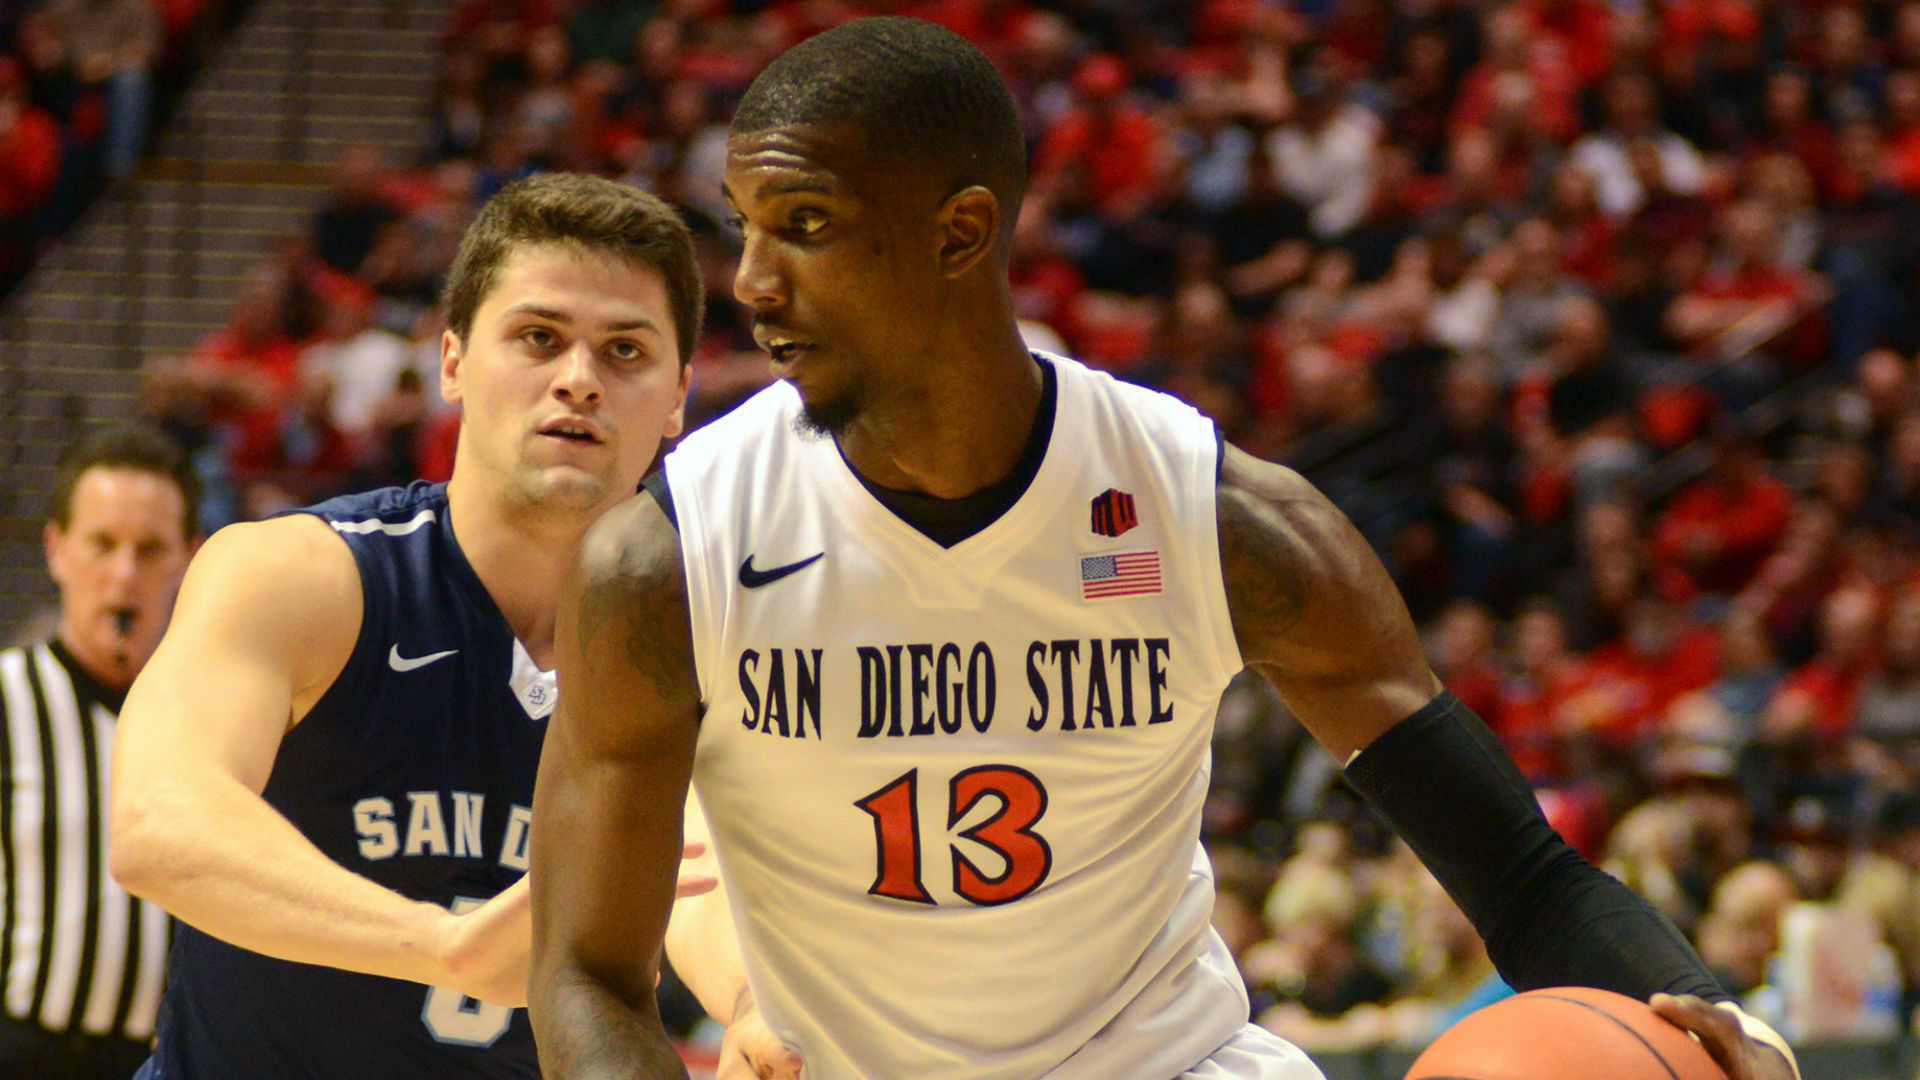 Wednesday college hoops pick - San Diego State visits Cincinnati